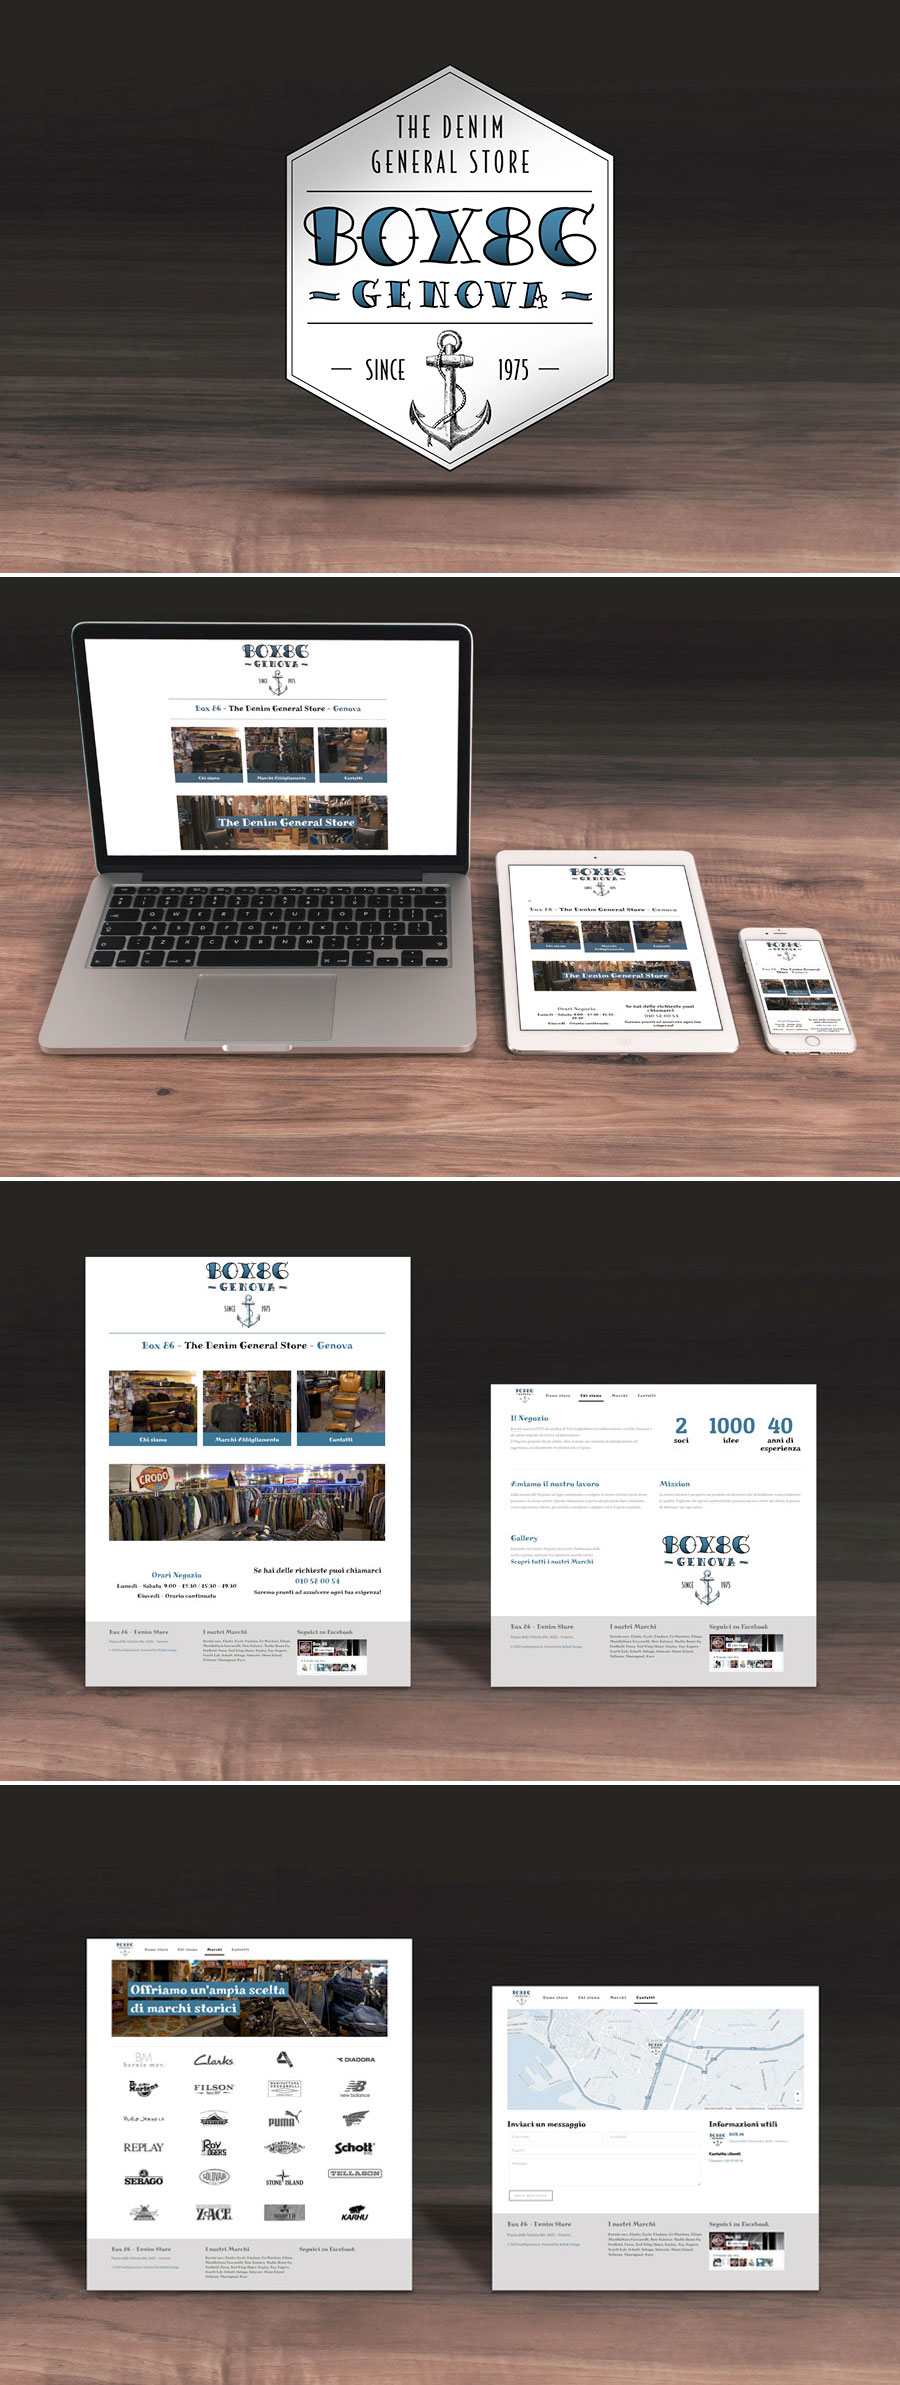 belink-design-genova-sito-web-responsive-box86-denim-general-store